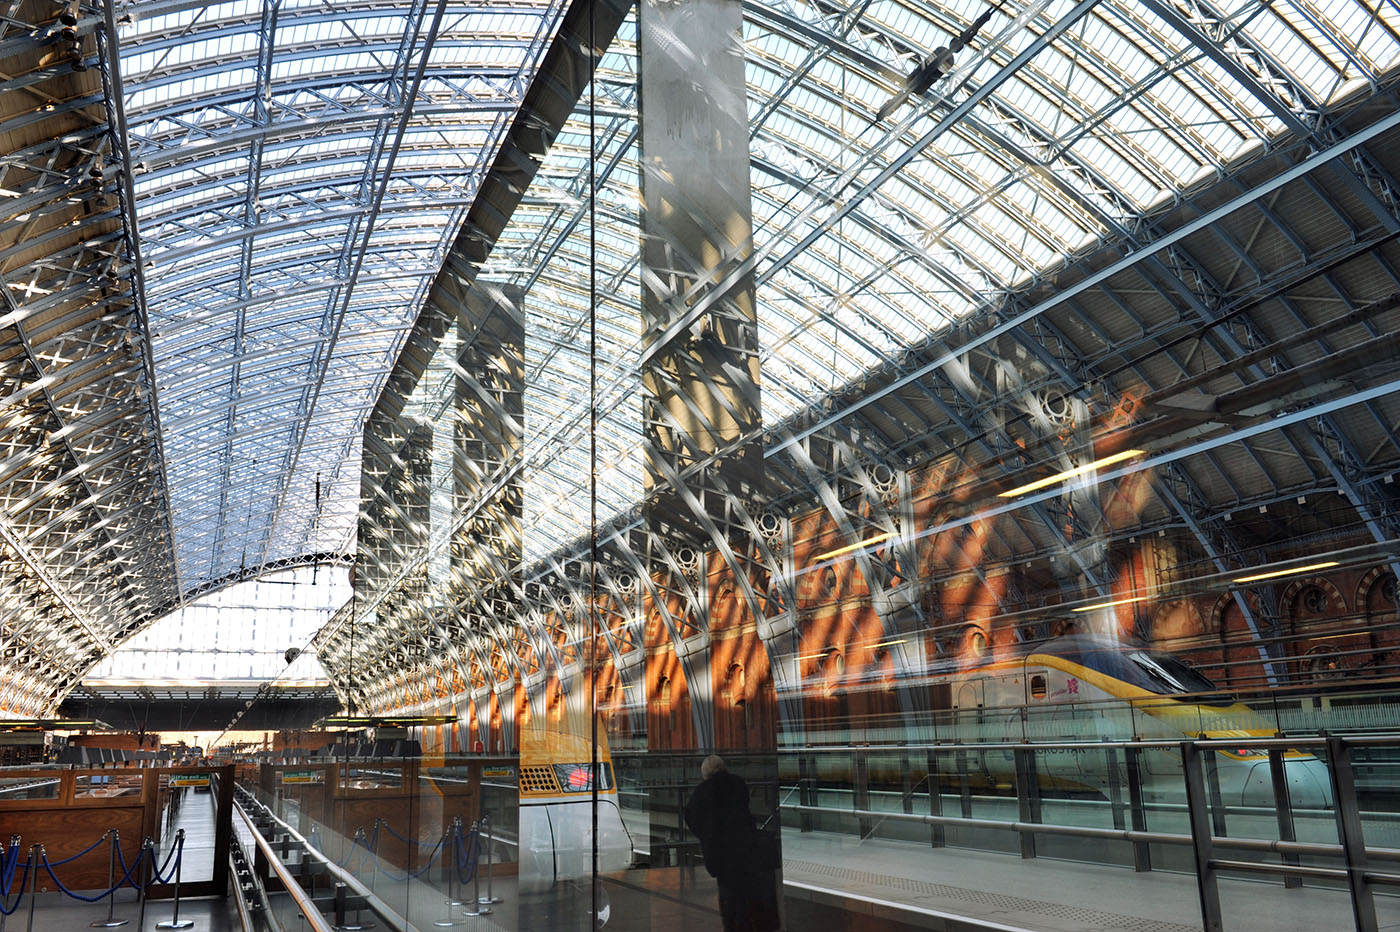 A view of the Champagne Bar and reflections of the girders and roof of the Barlow Shed, part of St Pancras International Station. Through the glass Eurostar trains can be seen on the tracks.